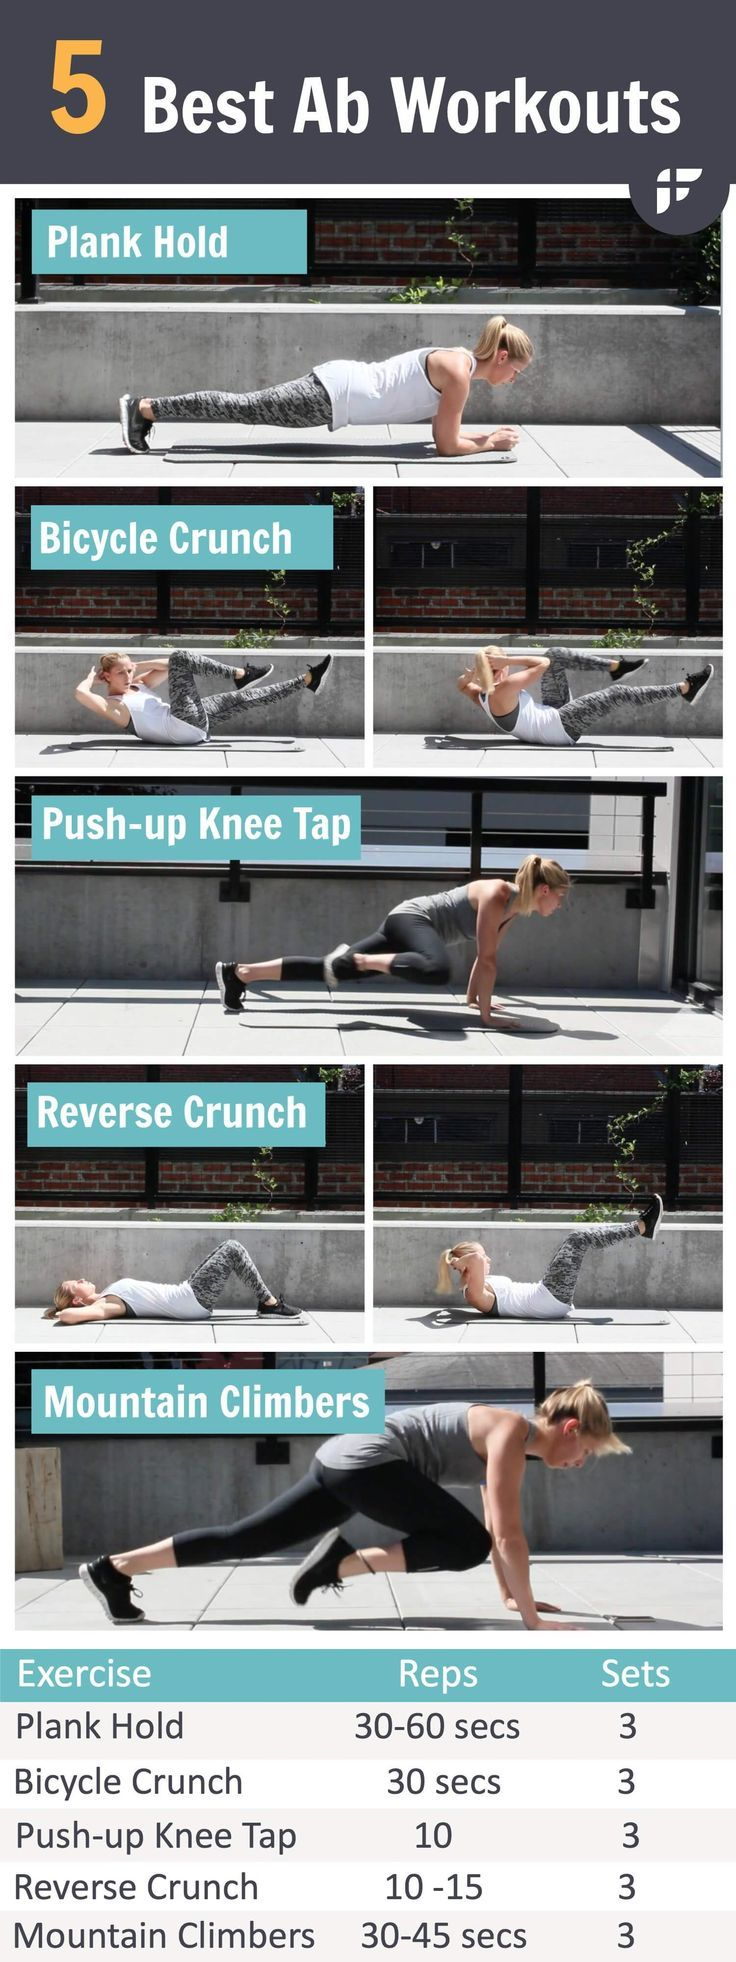 5 Best Ab Workouts to Lose Your Belly Fat Fast- This fat scorching plan was designed specifically to tackle you stubborn belly fat. Do this workout for 15 minutes a day for 3-4 days a week to uncover your abs.